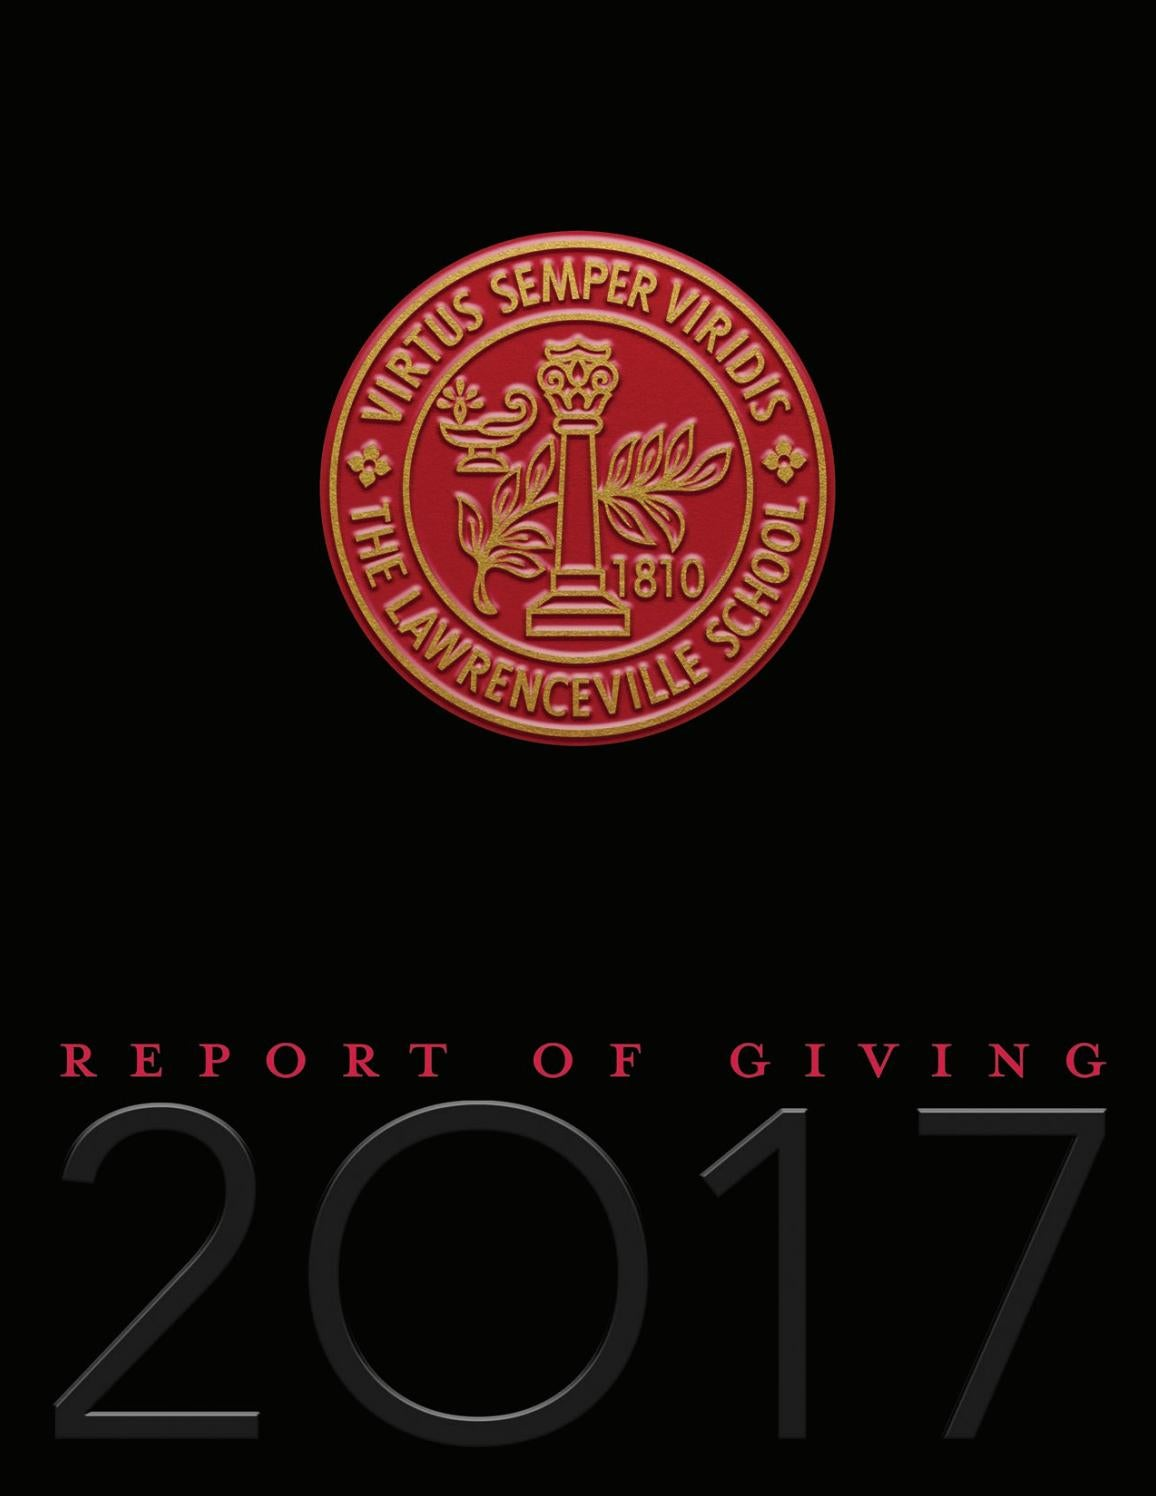 Digest of social experiments second edi by greenberg 1998 04 01 array 2017 report of giving by the lawrenceville school issuu rh issuu fandeluxe Images